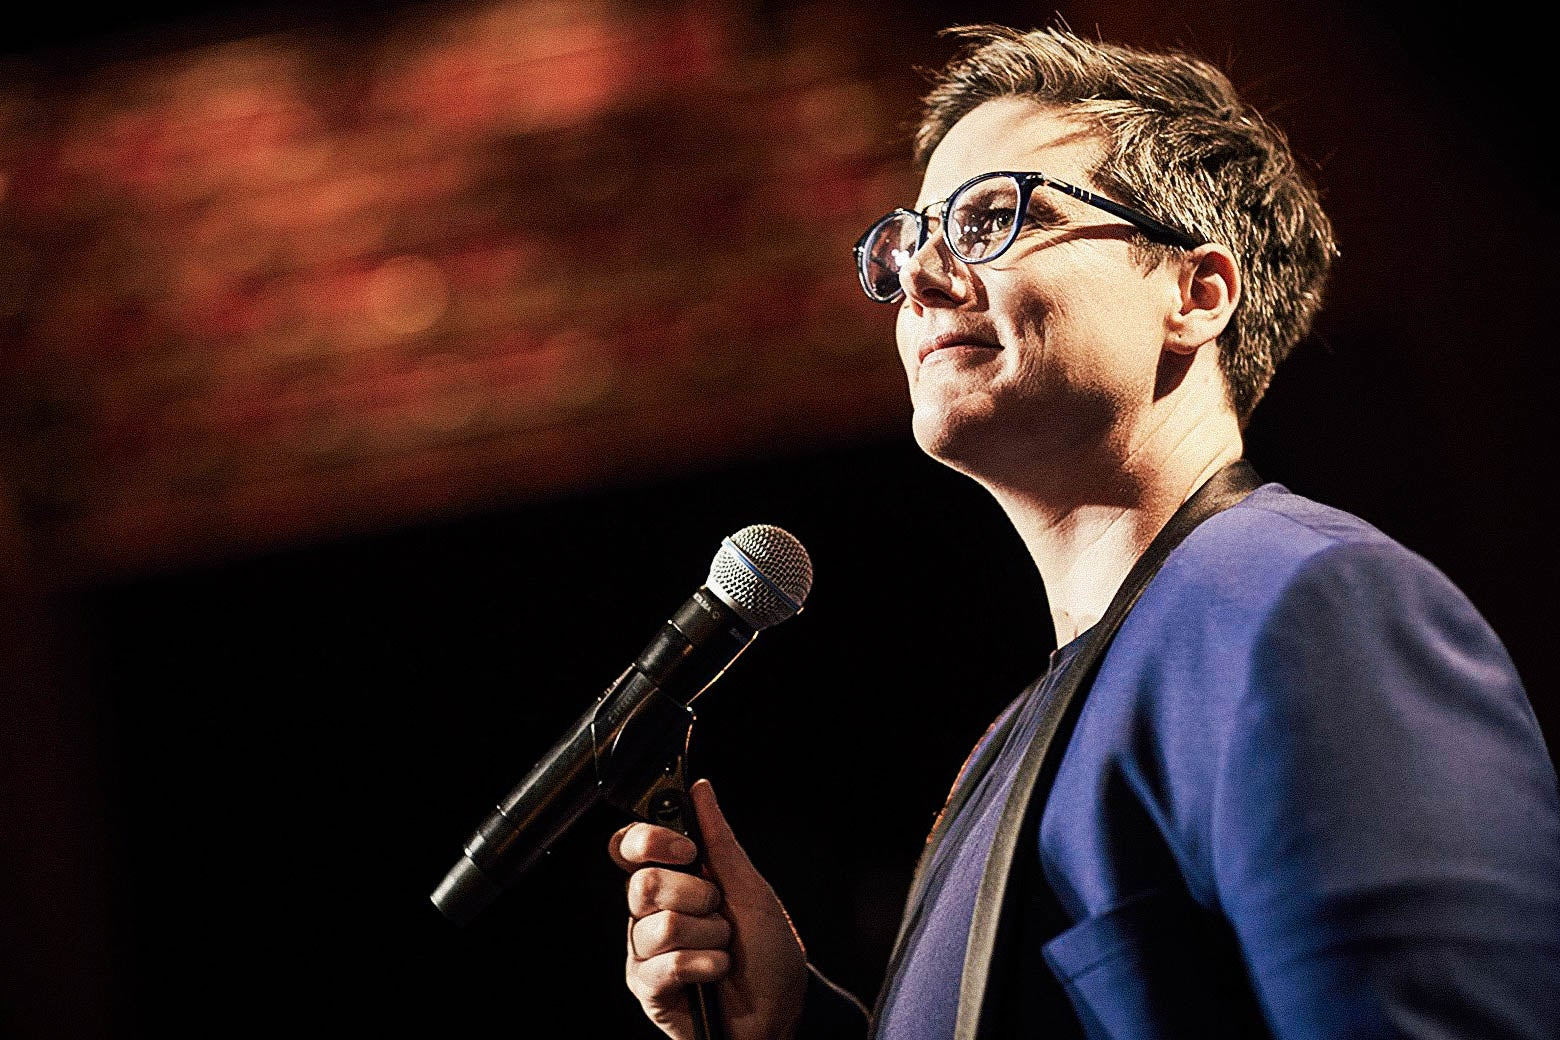 Hannah Gadsby at a microphone.